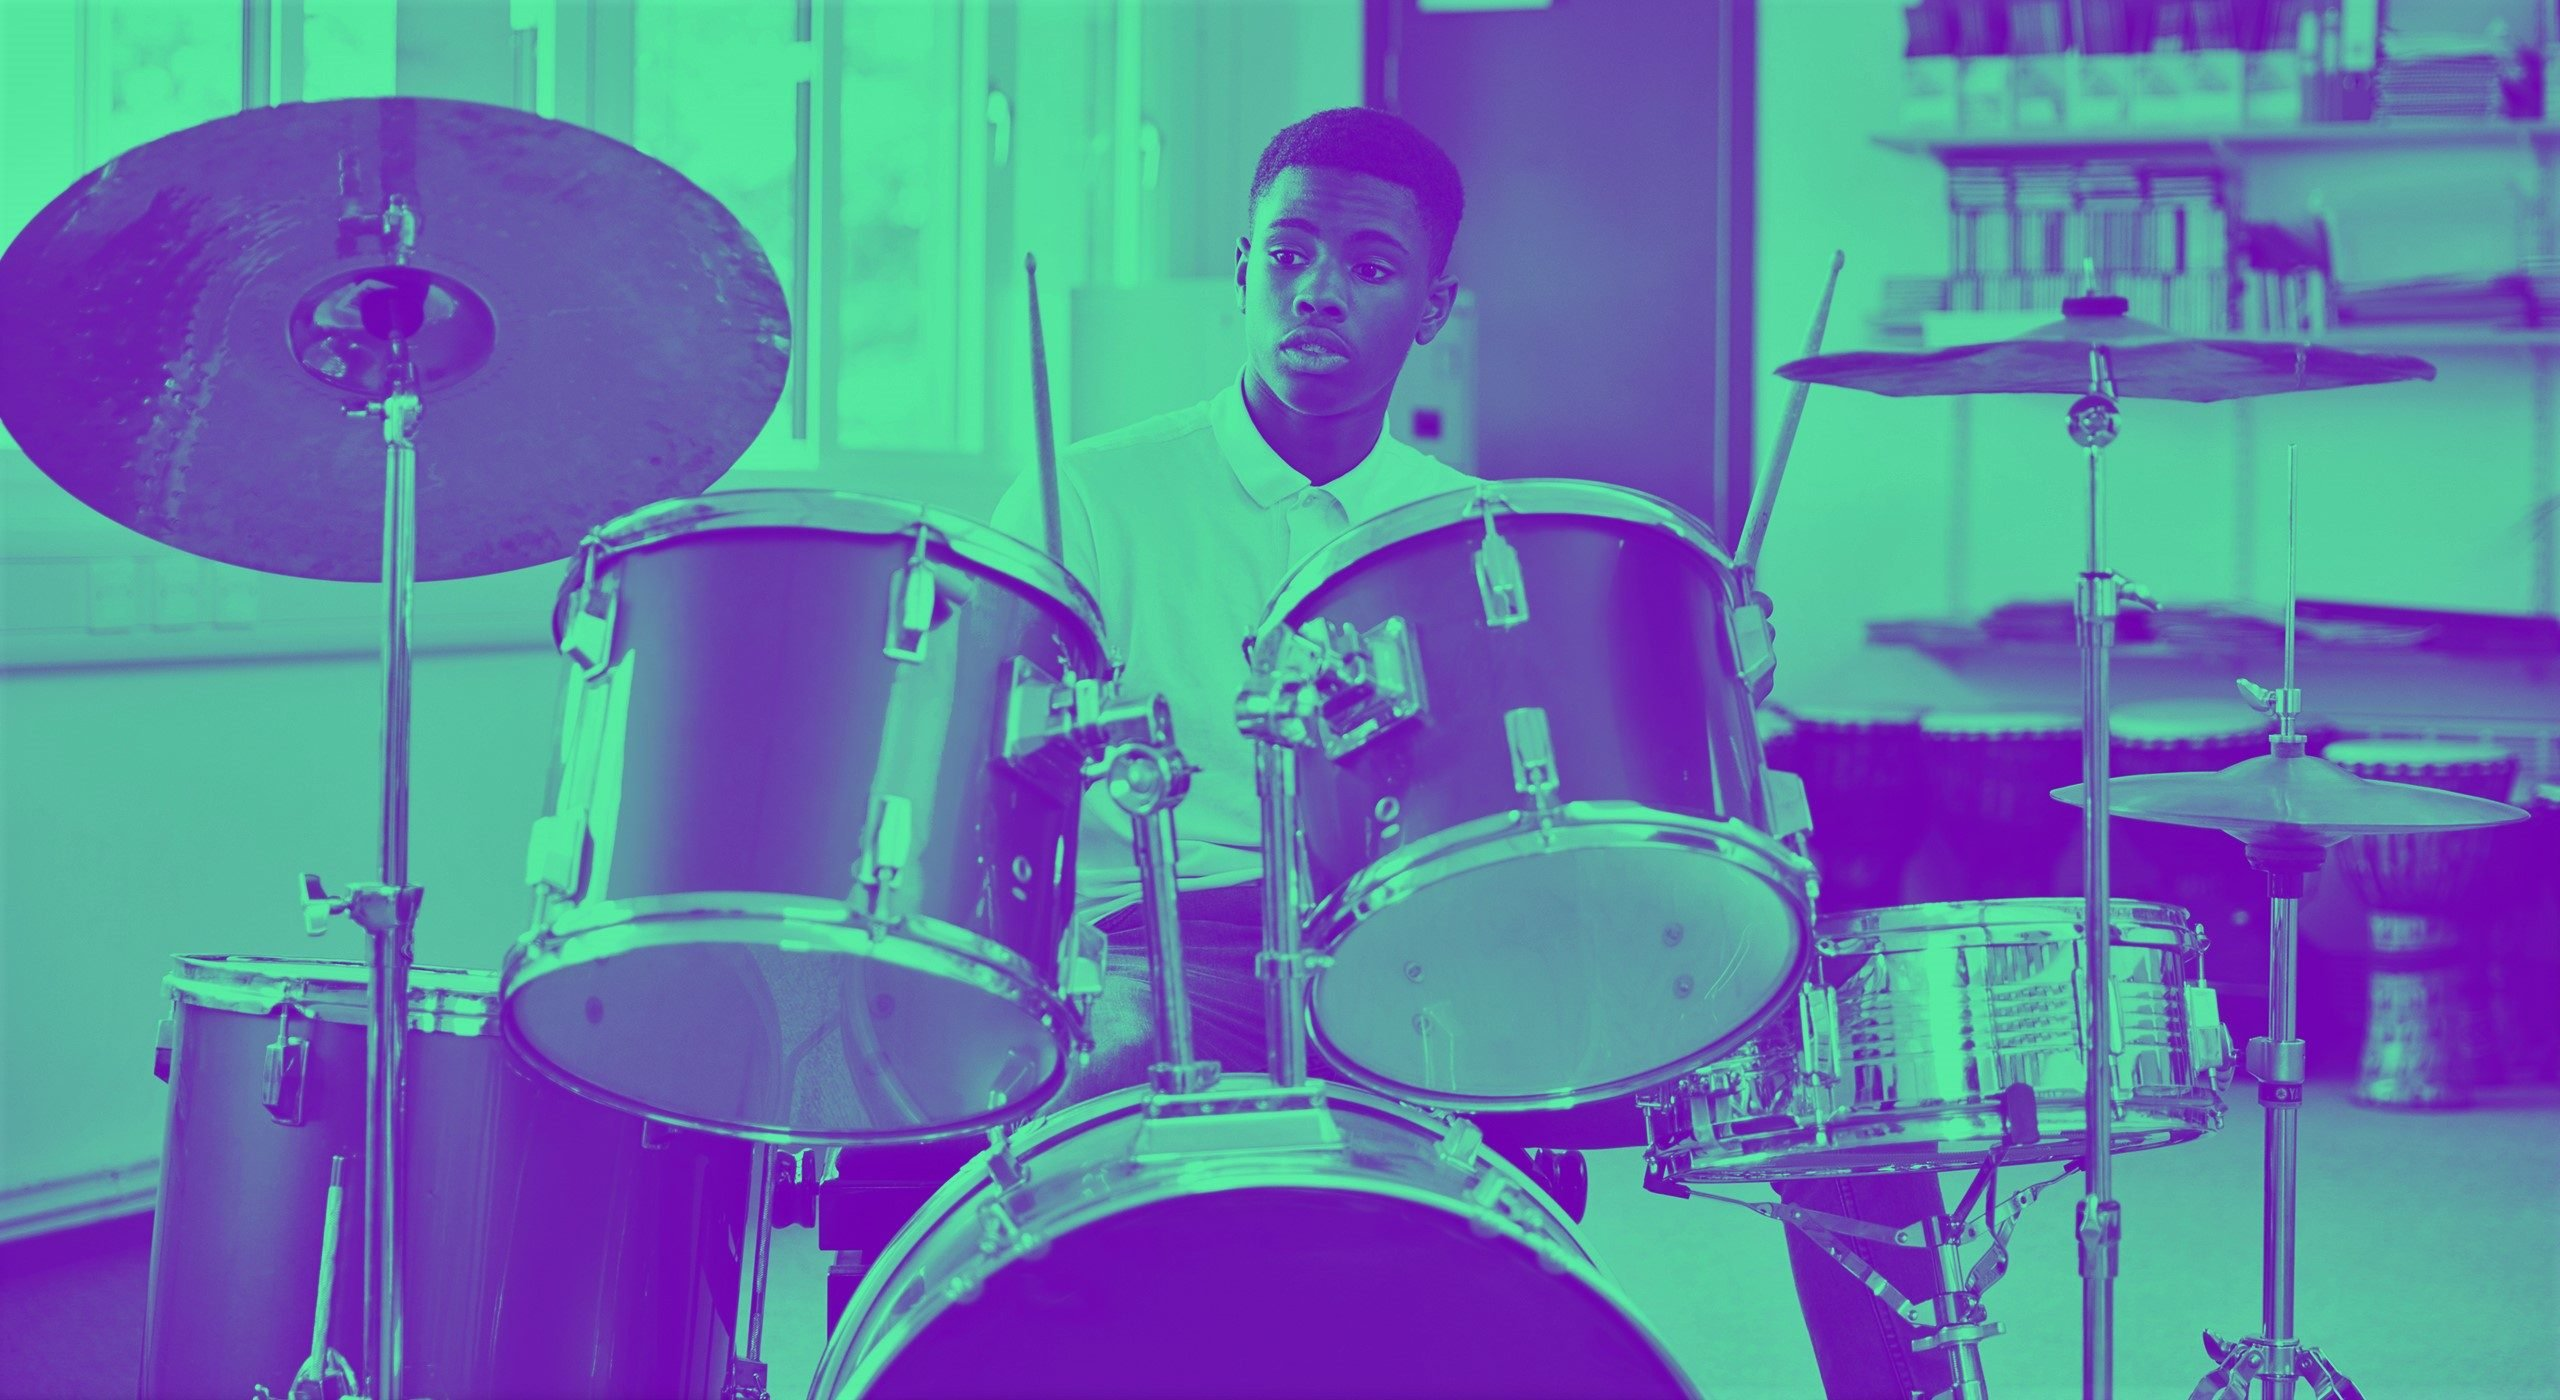 Young man learning to play drums in bedroom